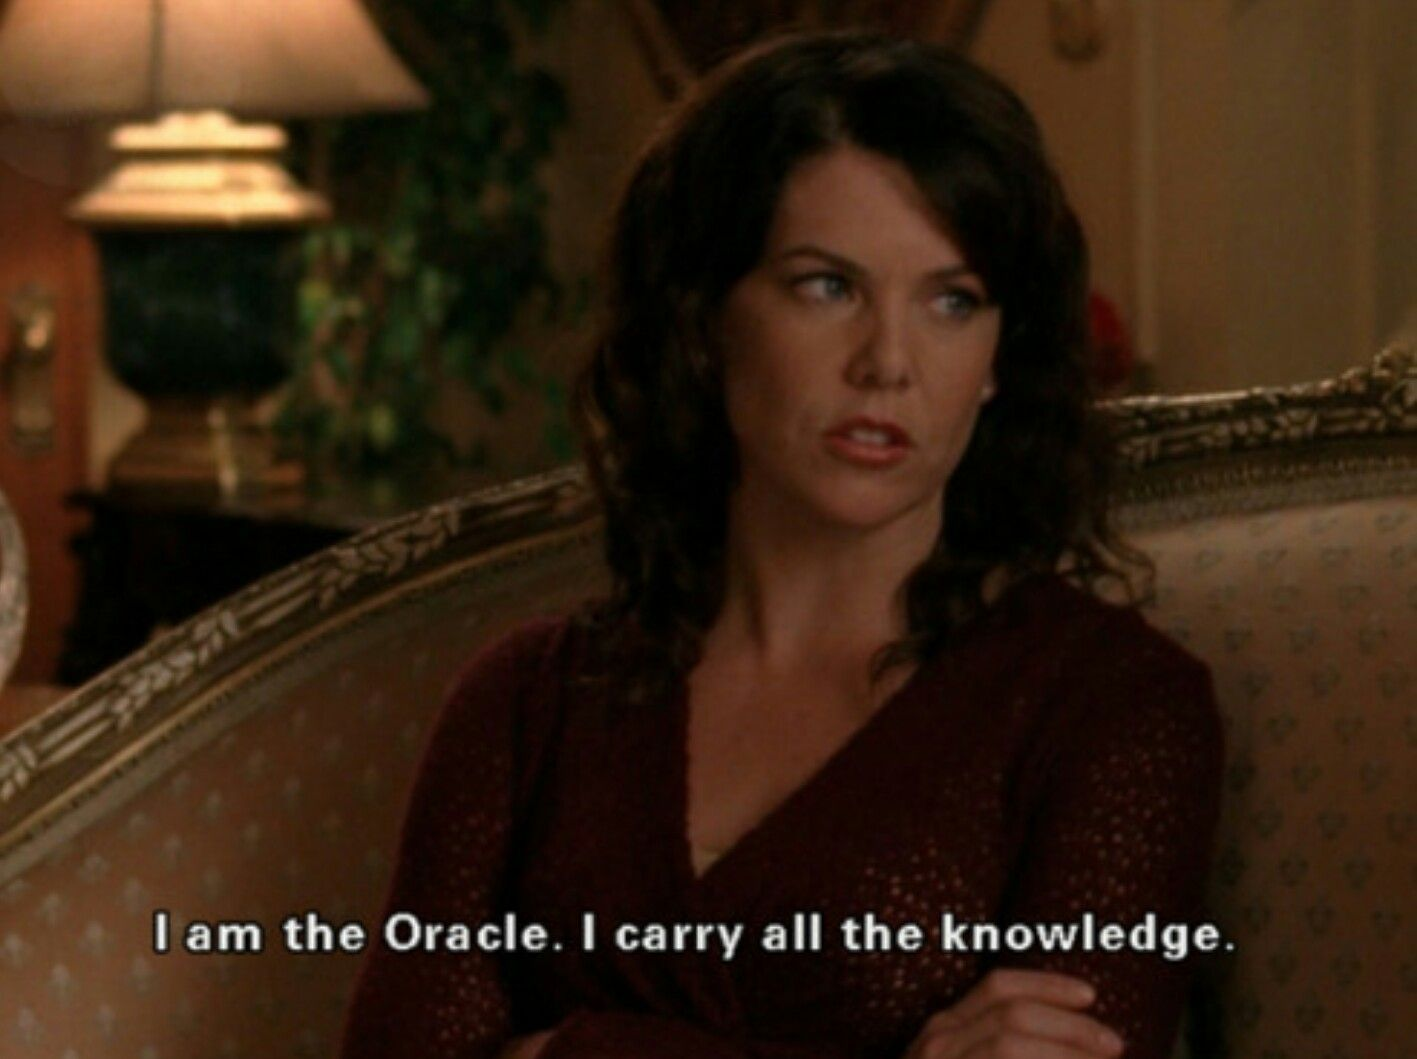 Pin by ky linn on quotes that hit home gilmore girls